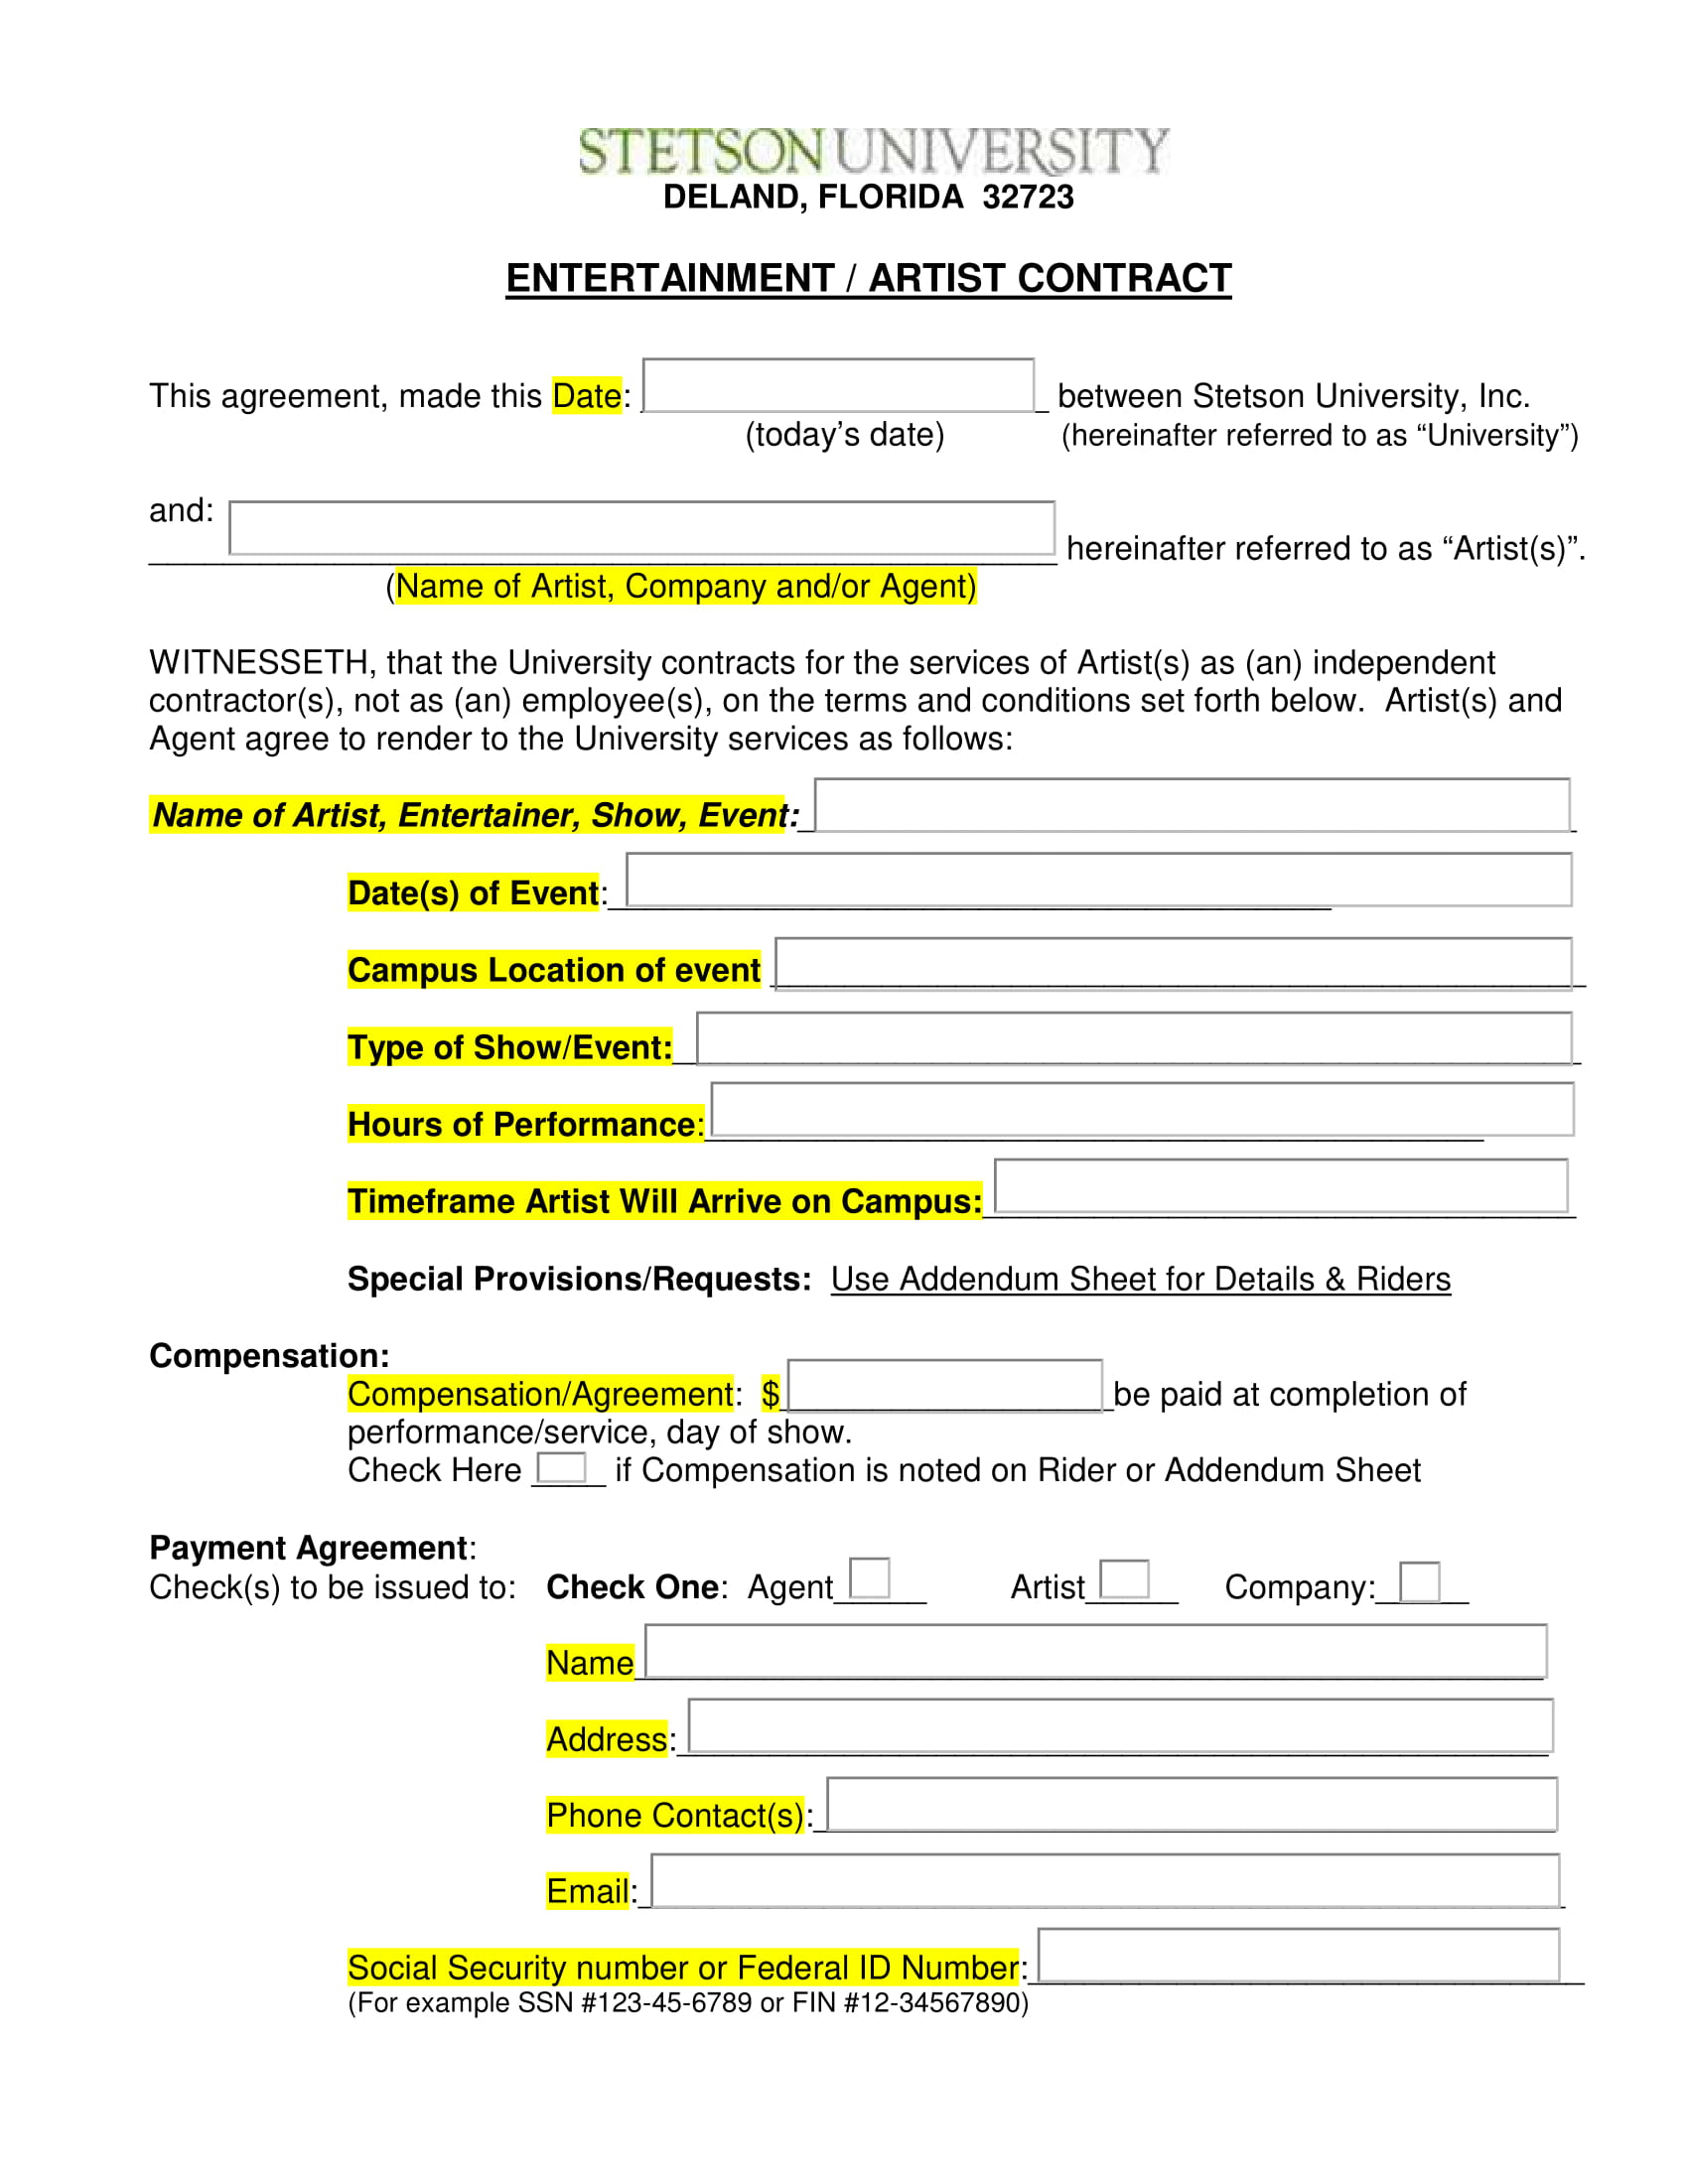 entertainment artist contract form 1